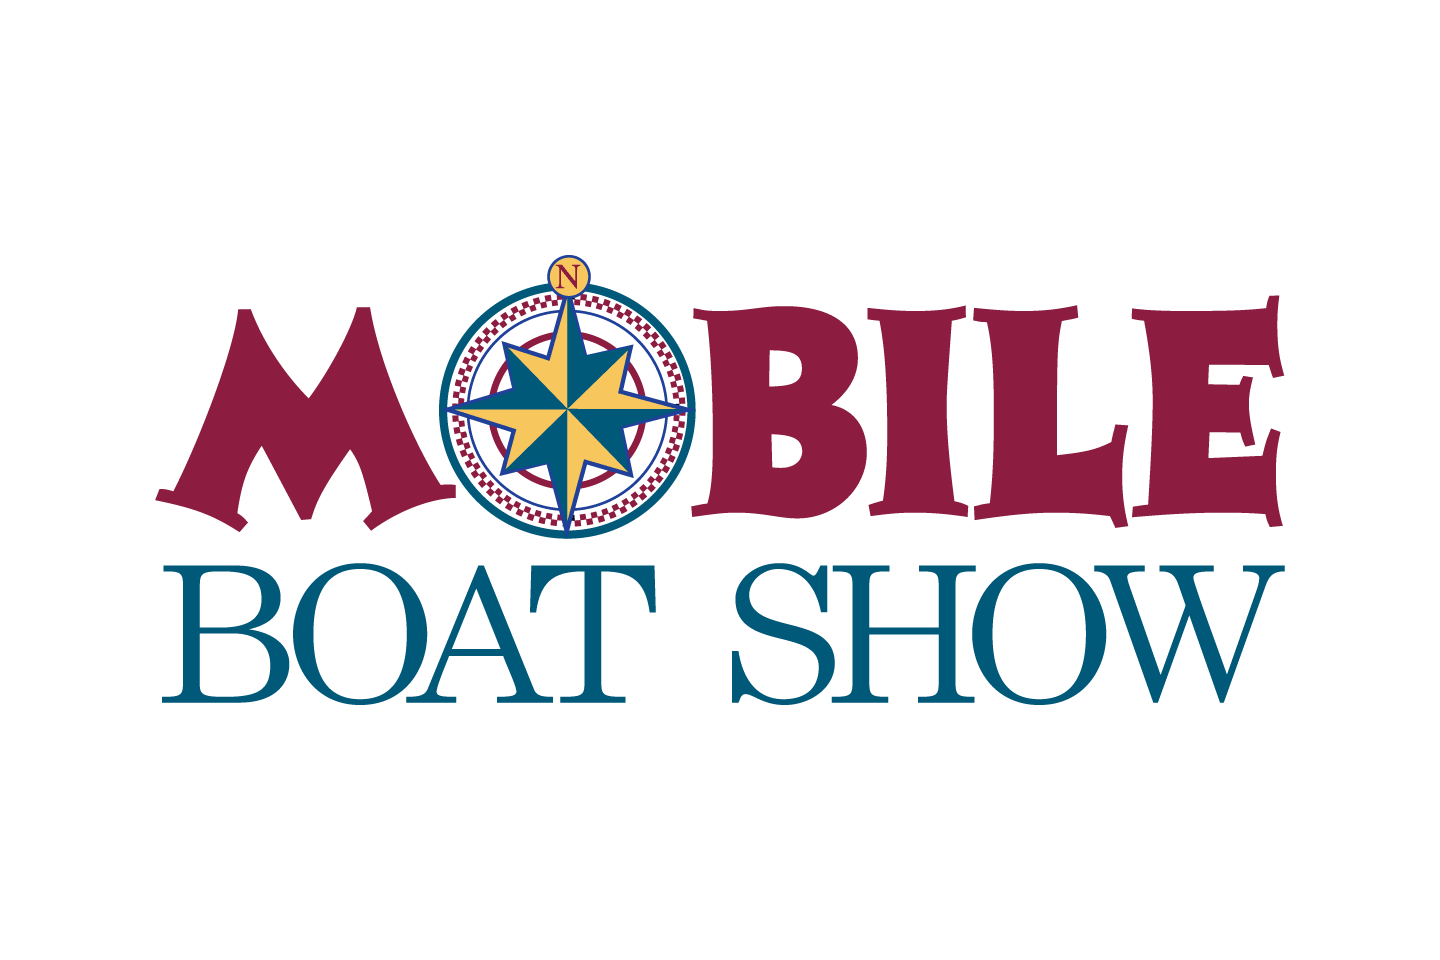 Mobile Boat Show